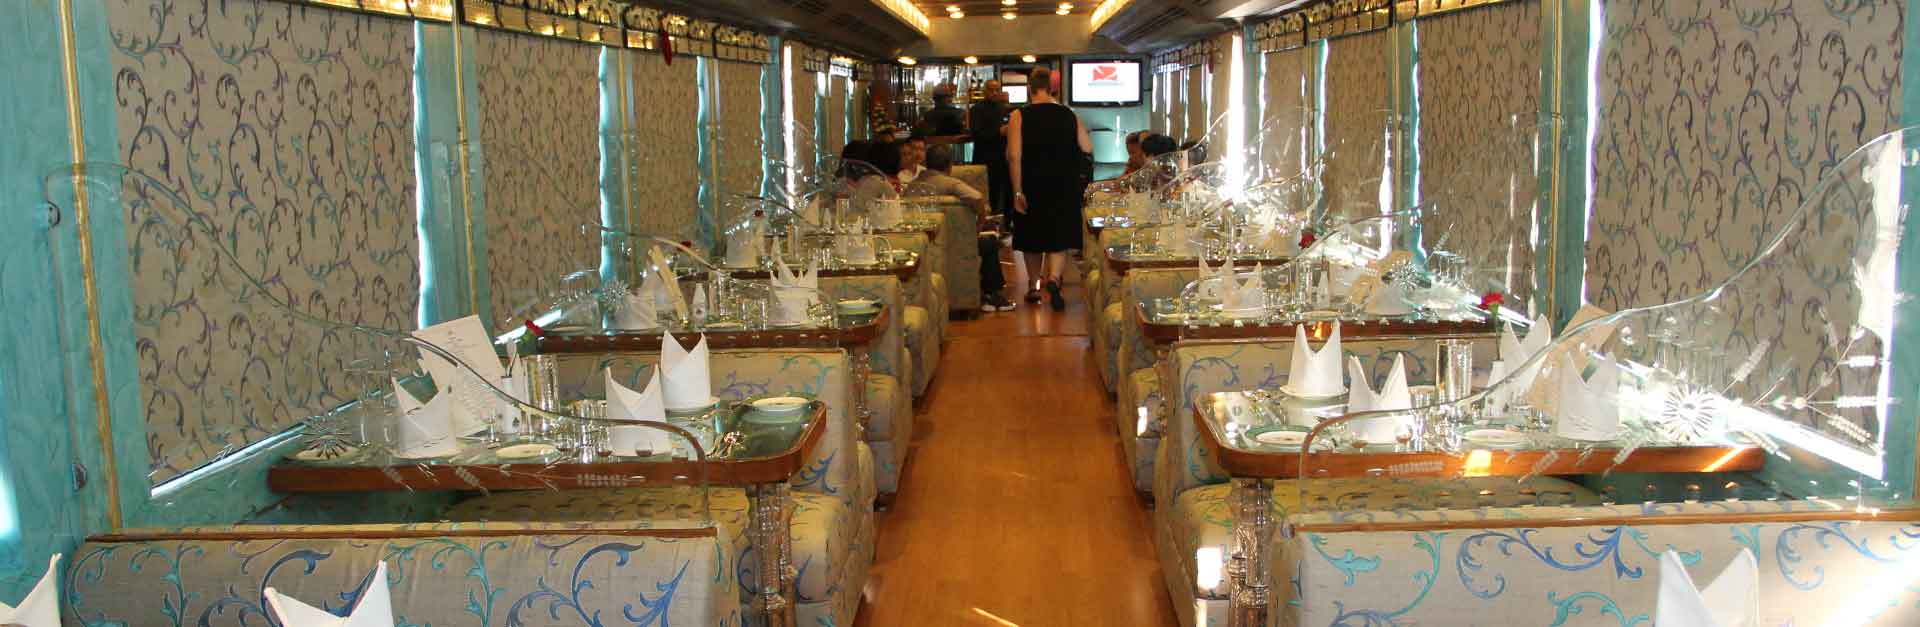 royal rajasthan on wheels route